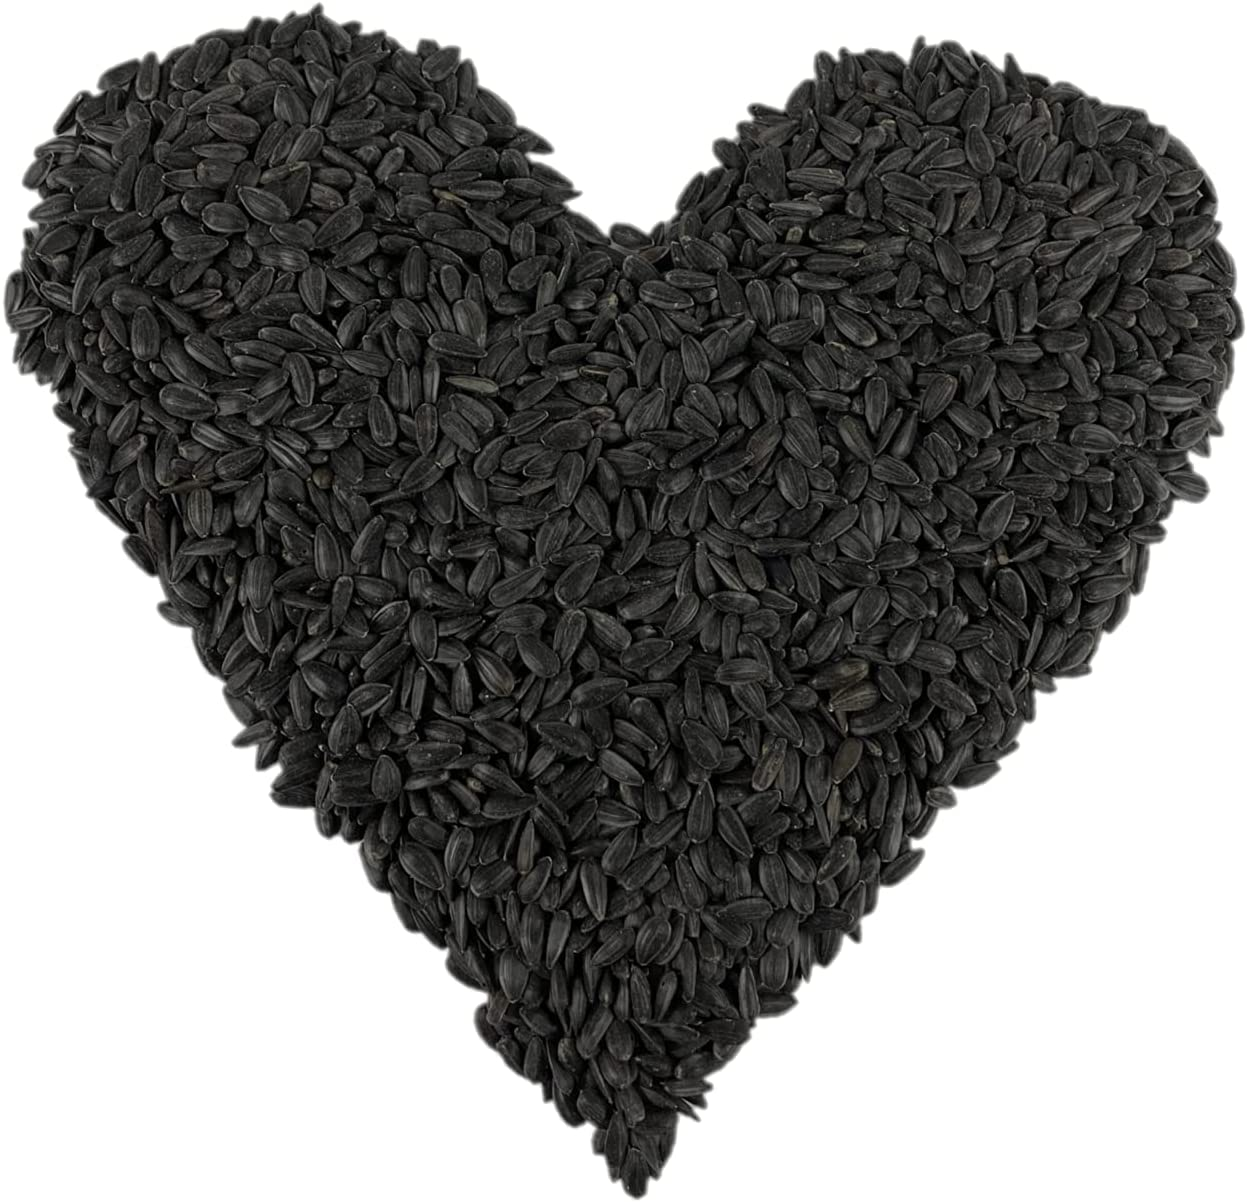 Max 76% OFF Executive Deals Premium Super sale Black Oil Birds for Wil Seed Sunflower